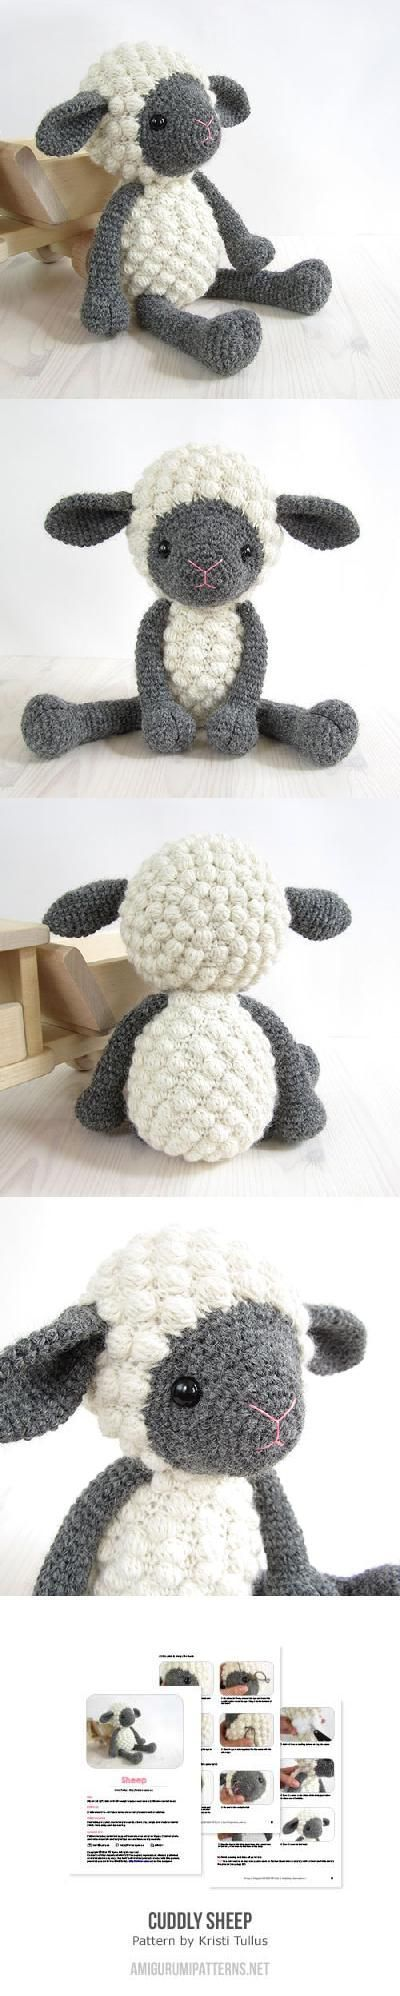 Crochet Bobble Sheep Pillow And Lots Of Free Patterns | Oveja ...